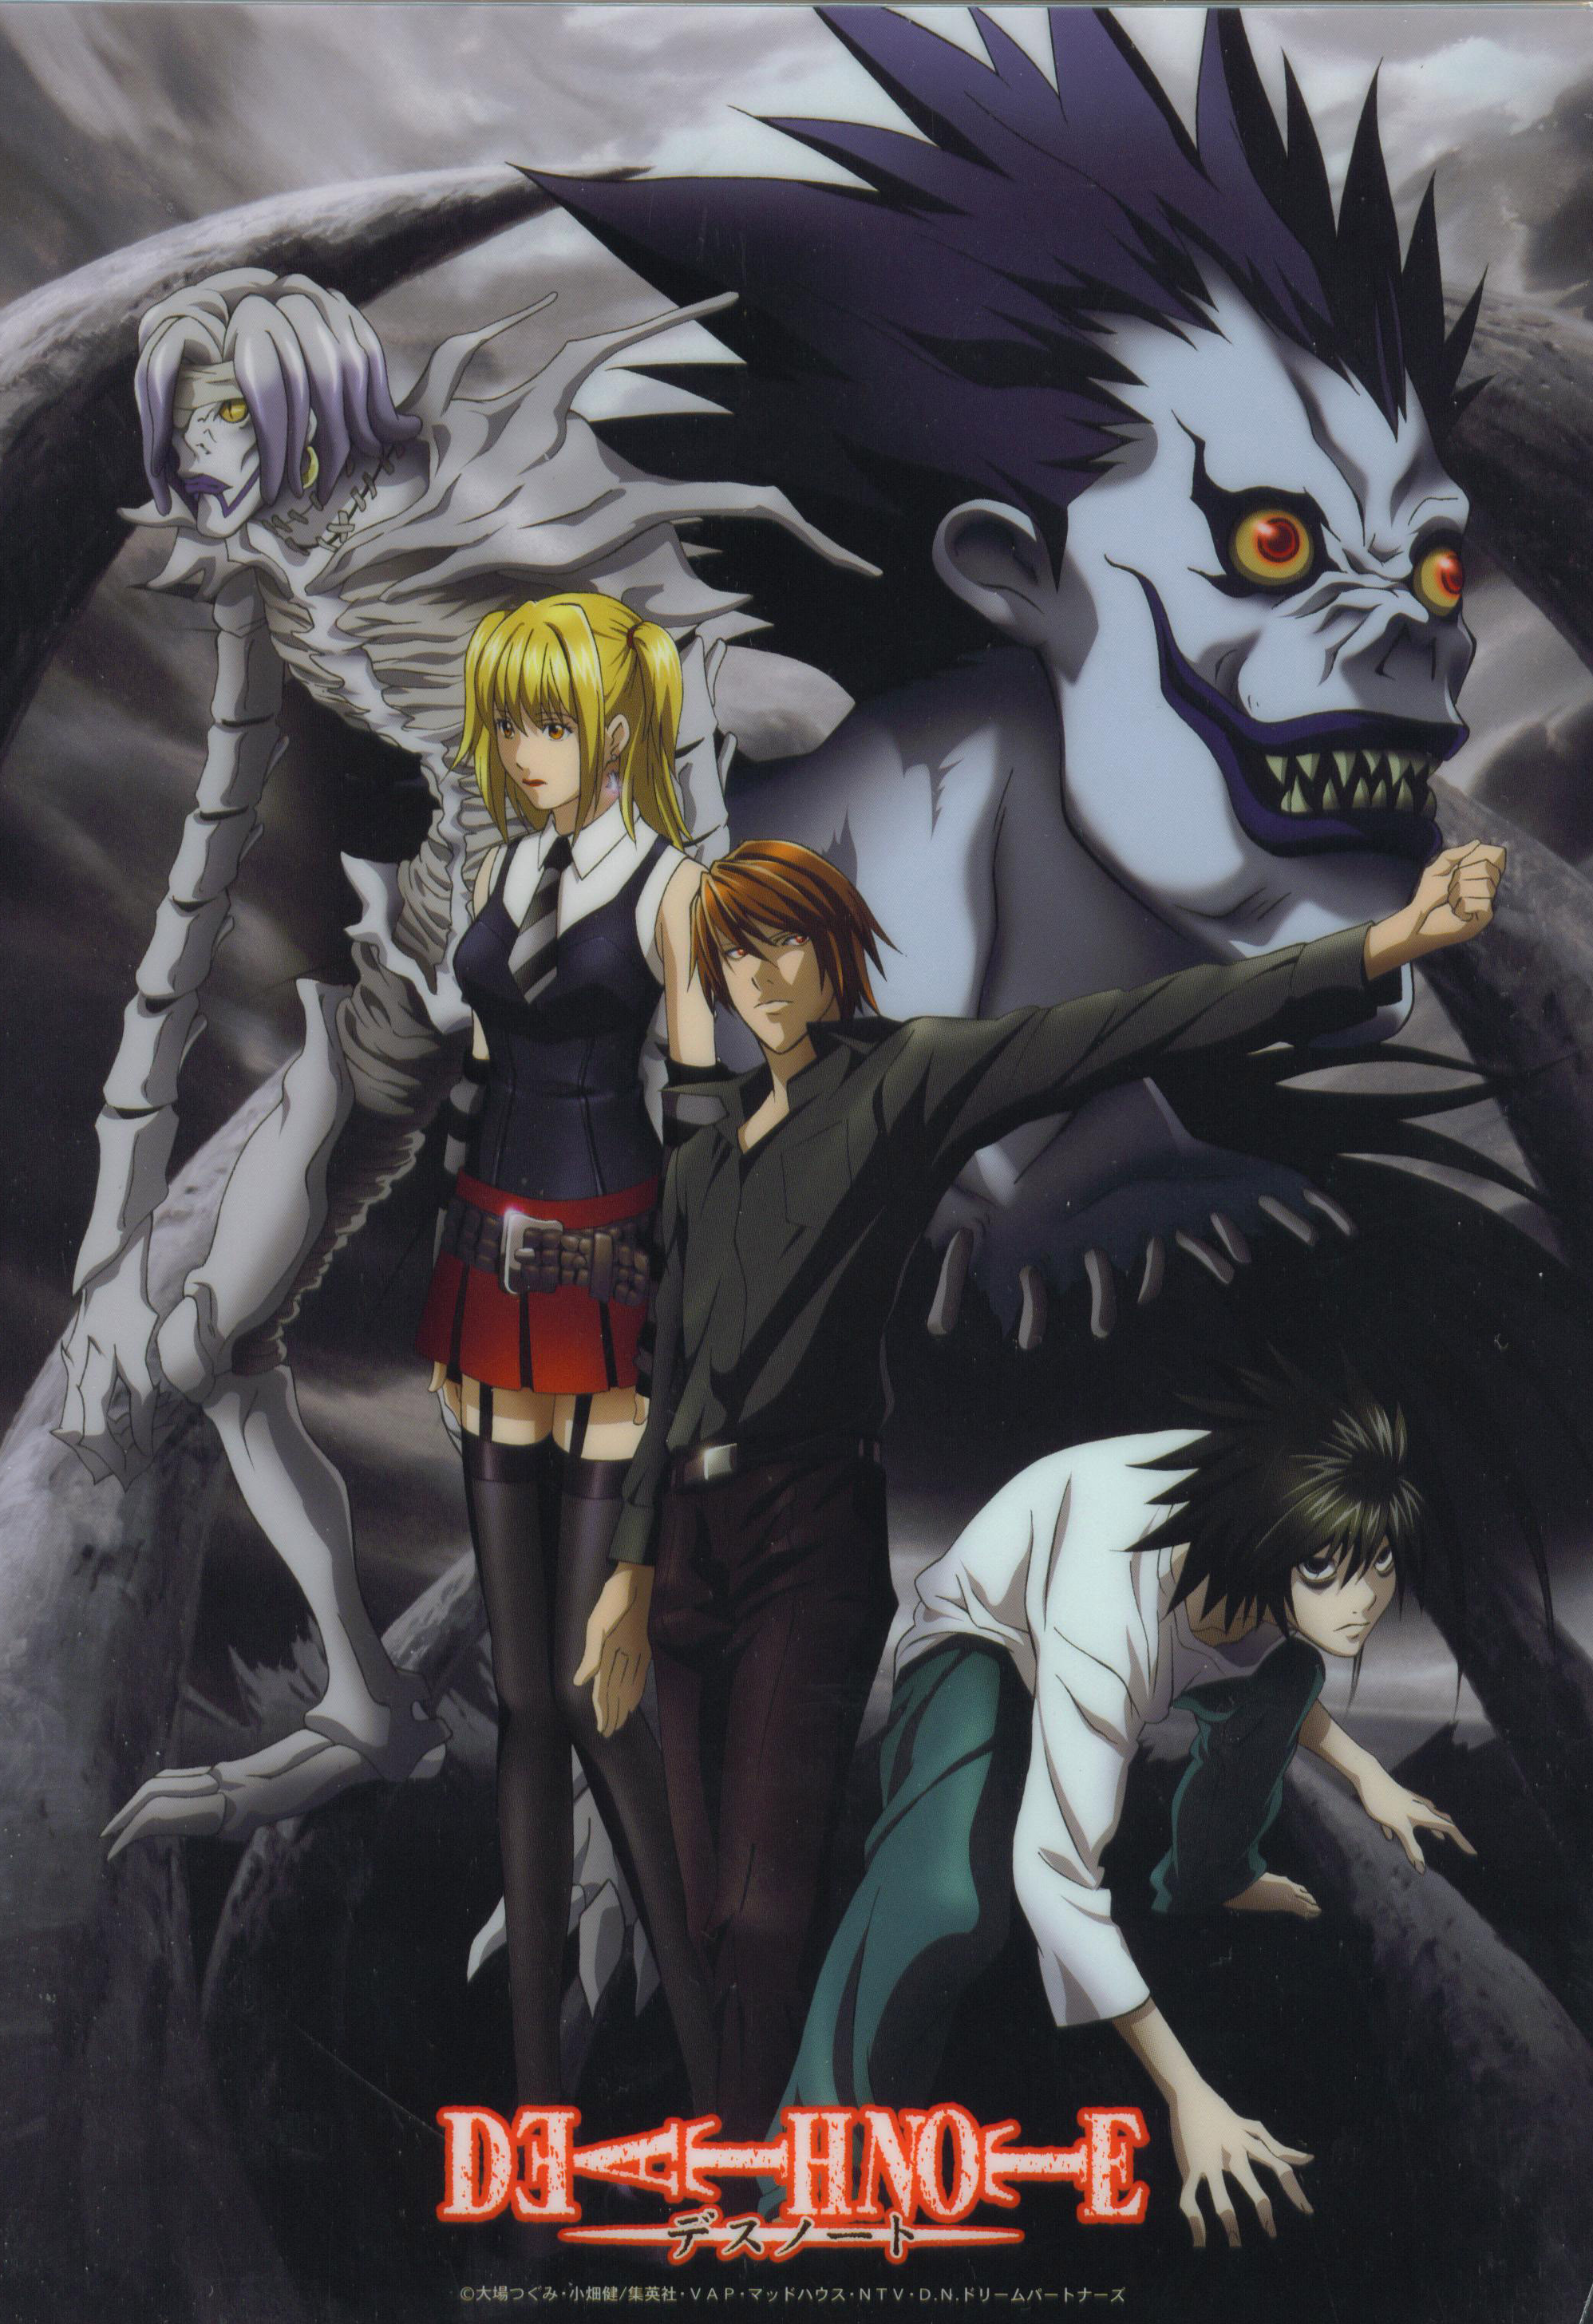 http://images1.wikia.nocookie.net/__cb20110803022627/deathnote/es/images/0/05/Death-note-xd.jpg